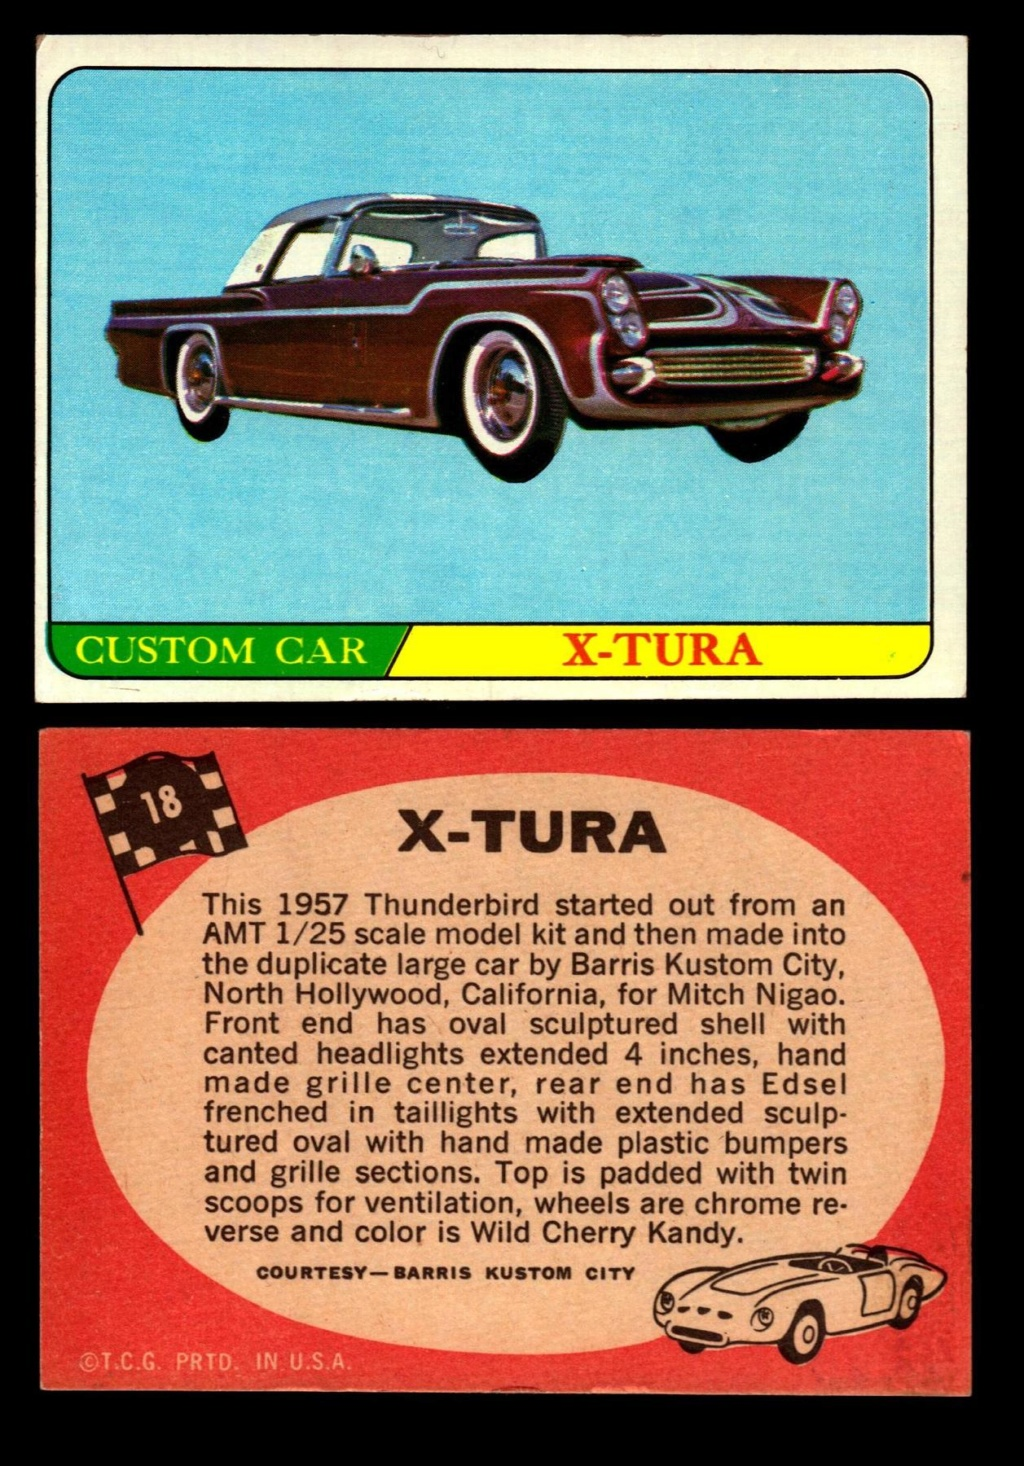 Hot Rods Topps - Vintage Trading Cards 1968 - Custom car - Dragster - Racer - Dream car - Barris Kustom City - Ed Roth Darrill Starbird, Gene Winfield, Bill Cuchenberry 18_f9410